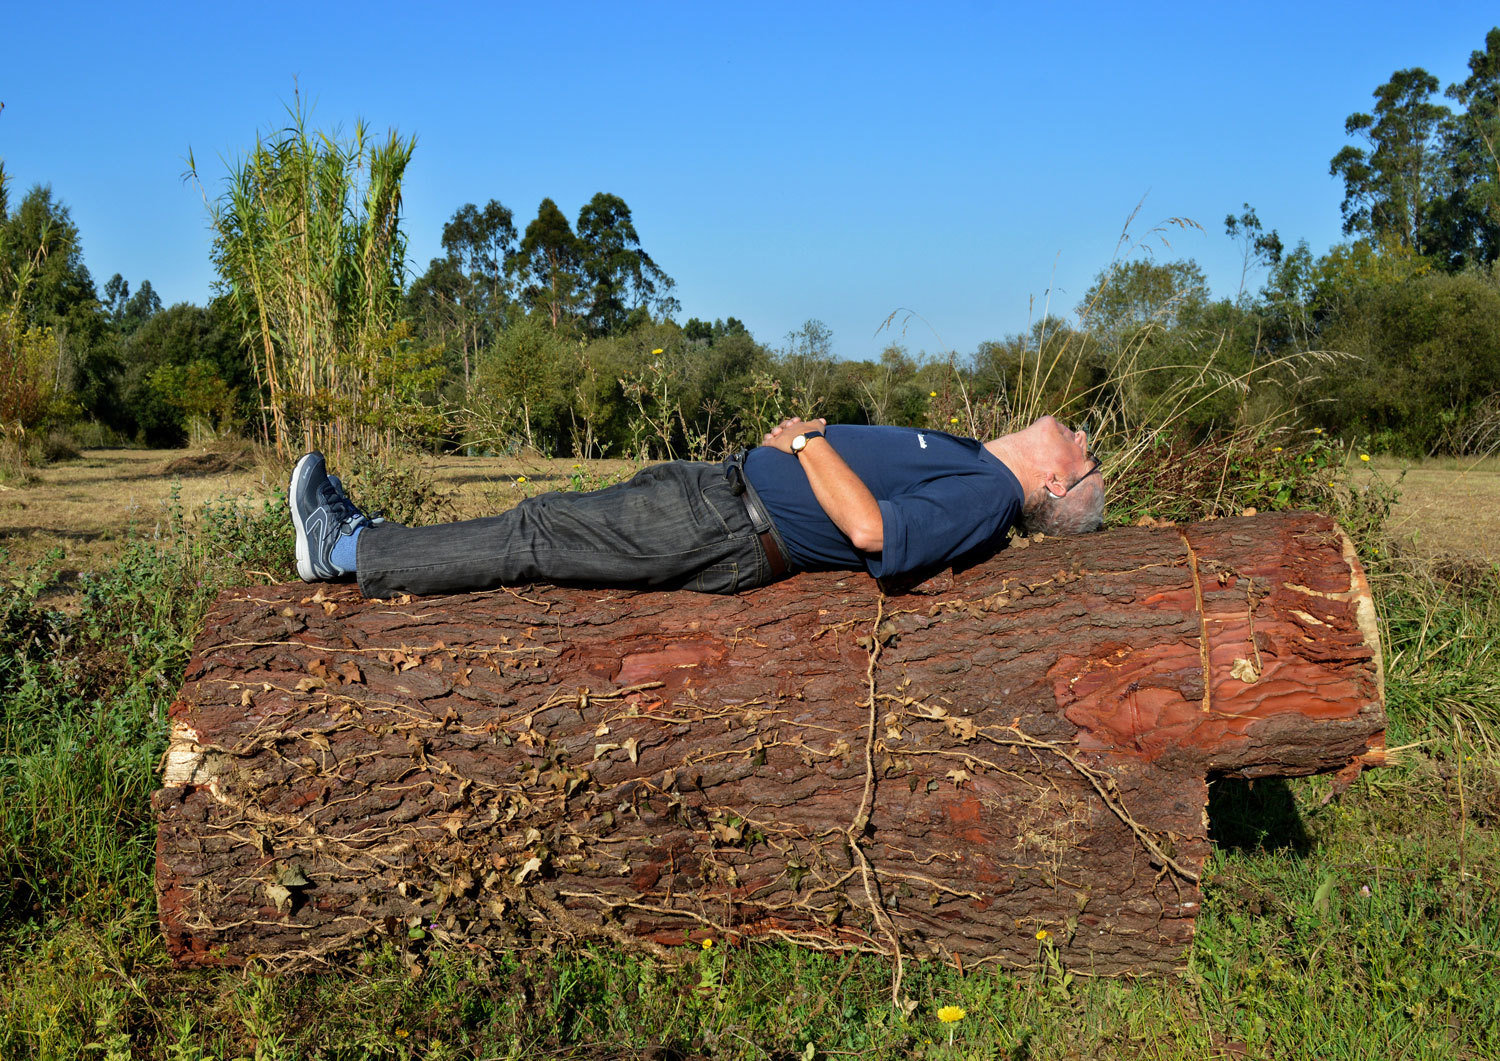 Vicente's portrait. Lying in a tree, sunbathing, Nos, Why Not?, Audiovisual Library of the European Commission, In Copyright